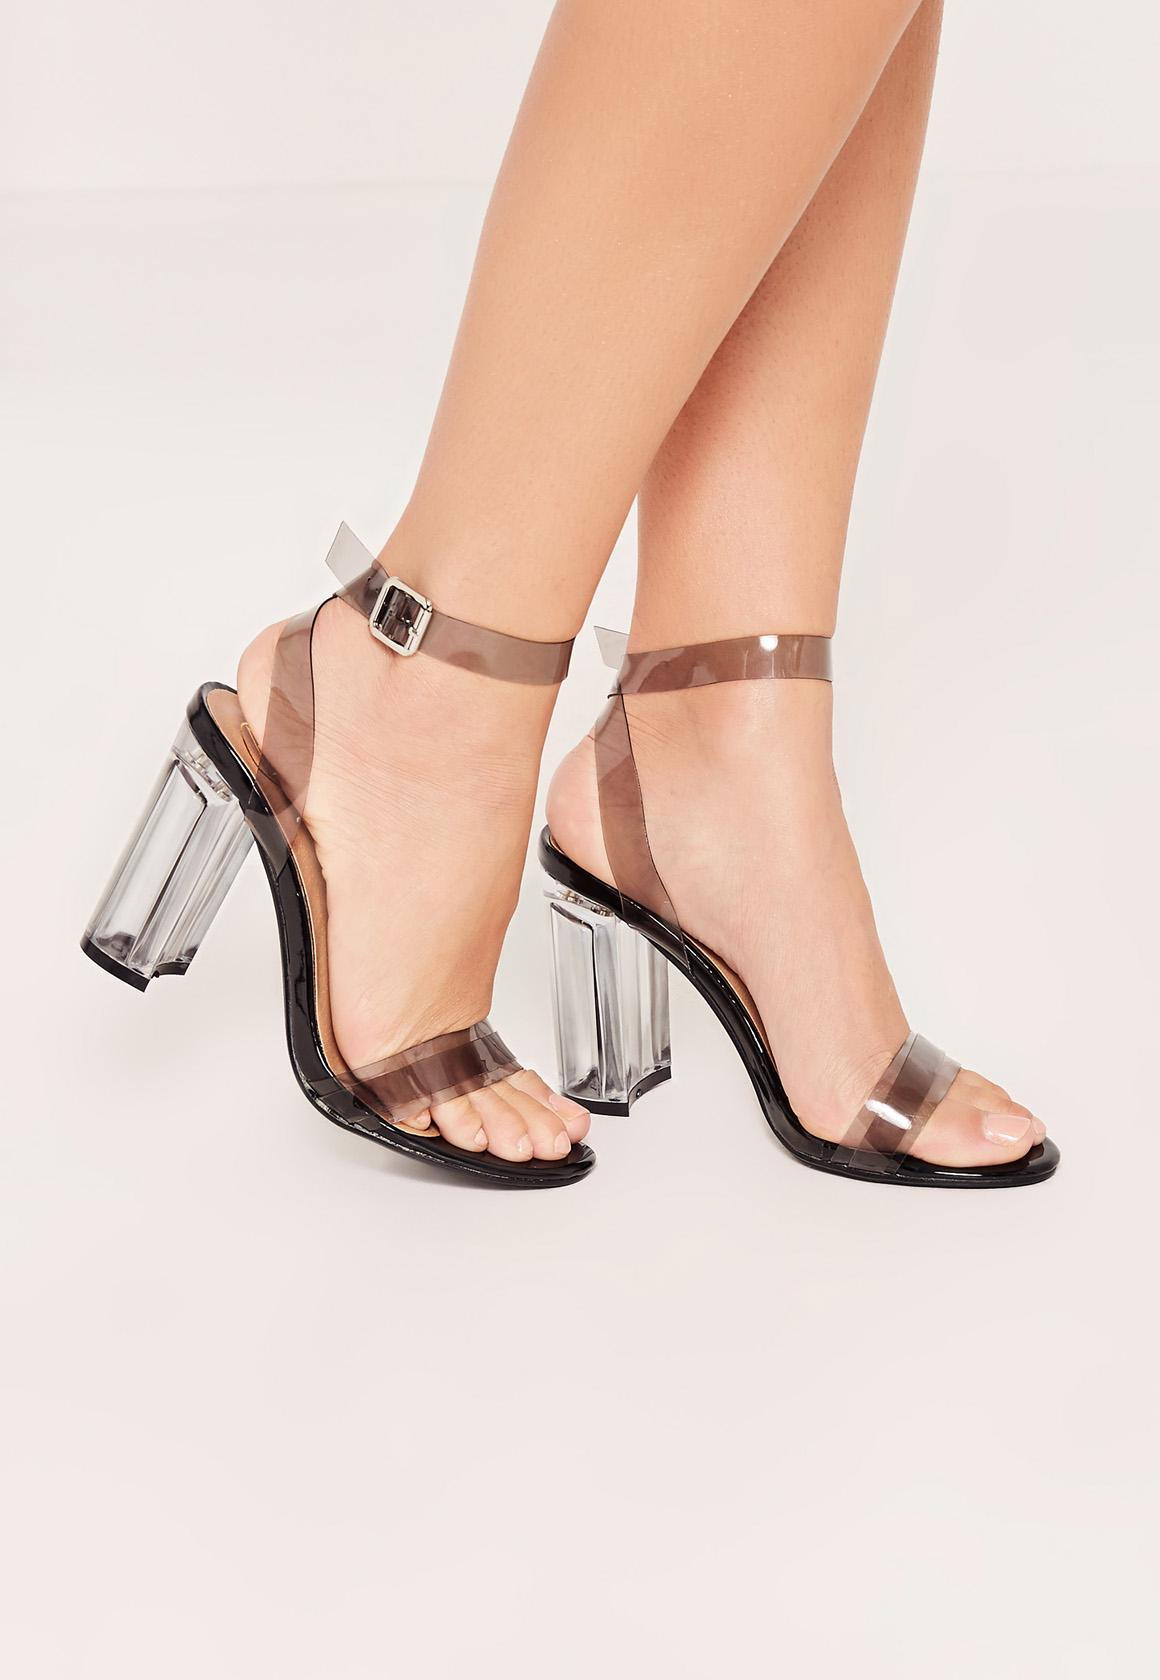 DESIGN Transparent Heeled Sandals latest collections for sale top quality online new arrival cheap price free shipping tumblr HX3oKn